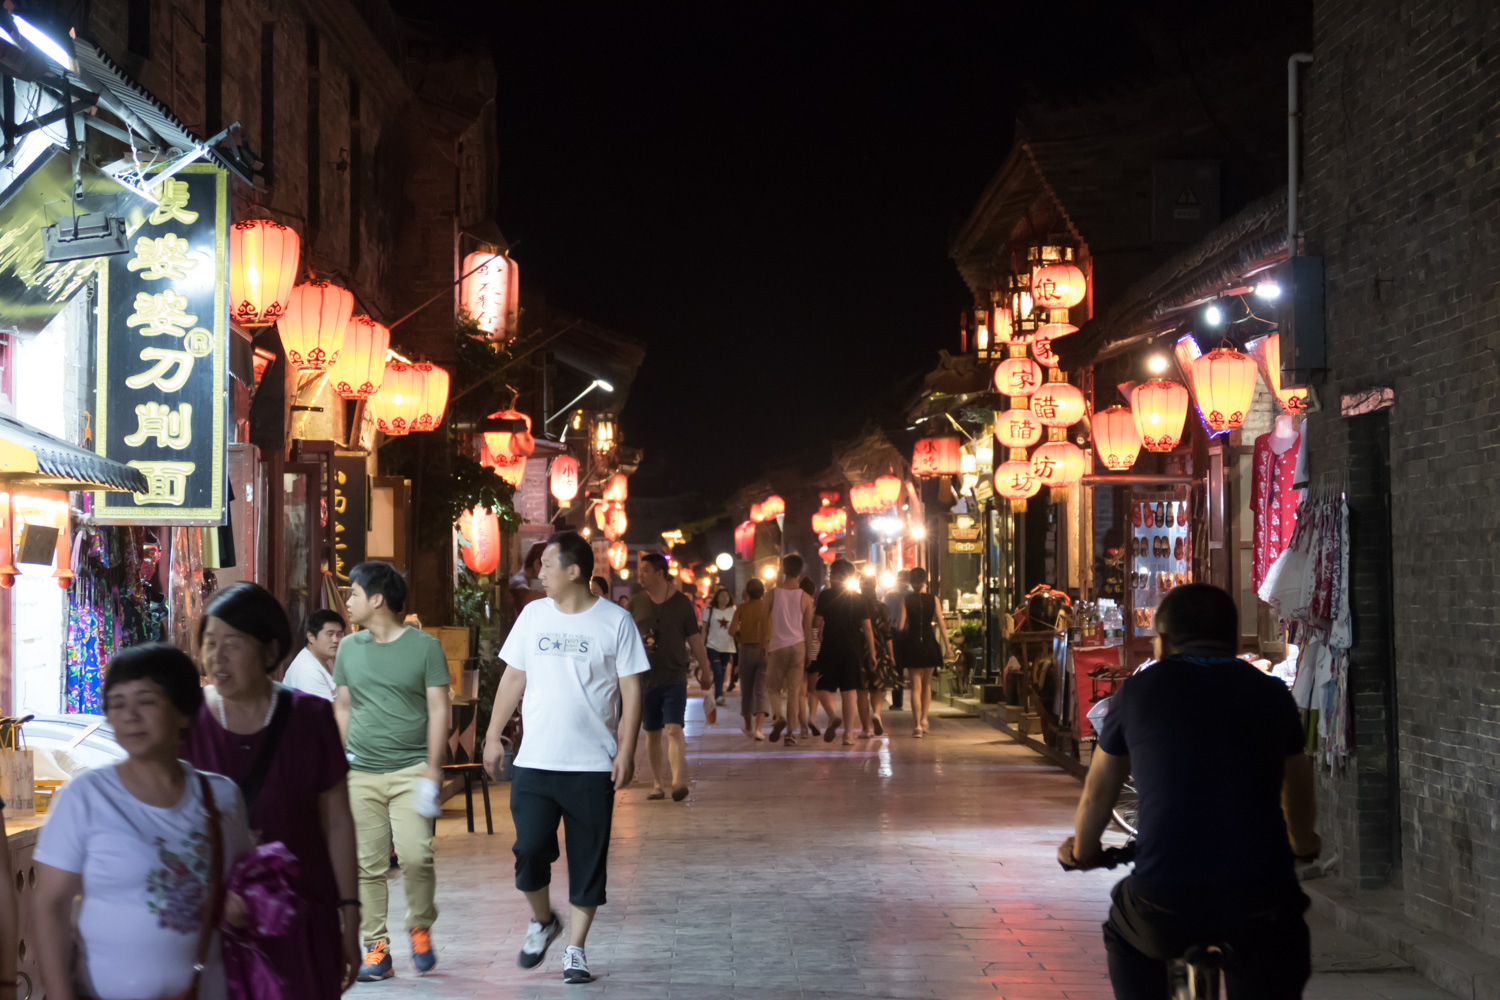 The town is also very active at night